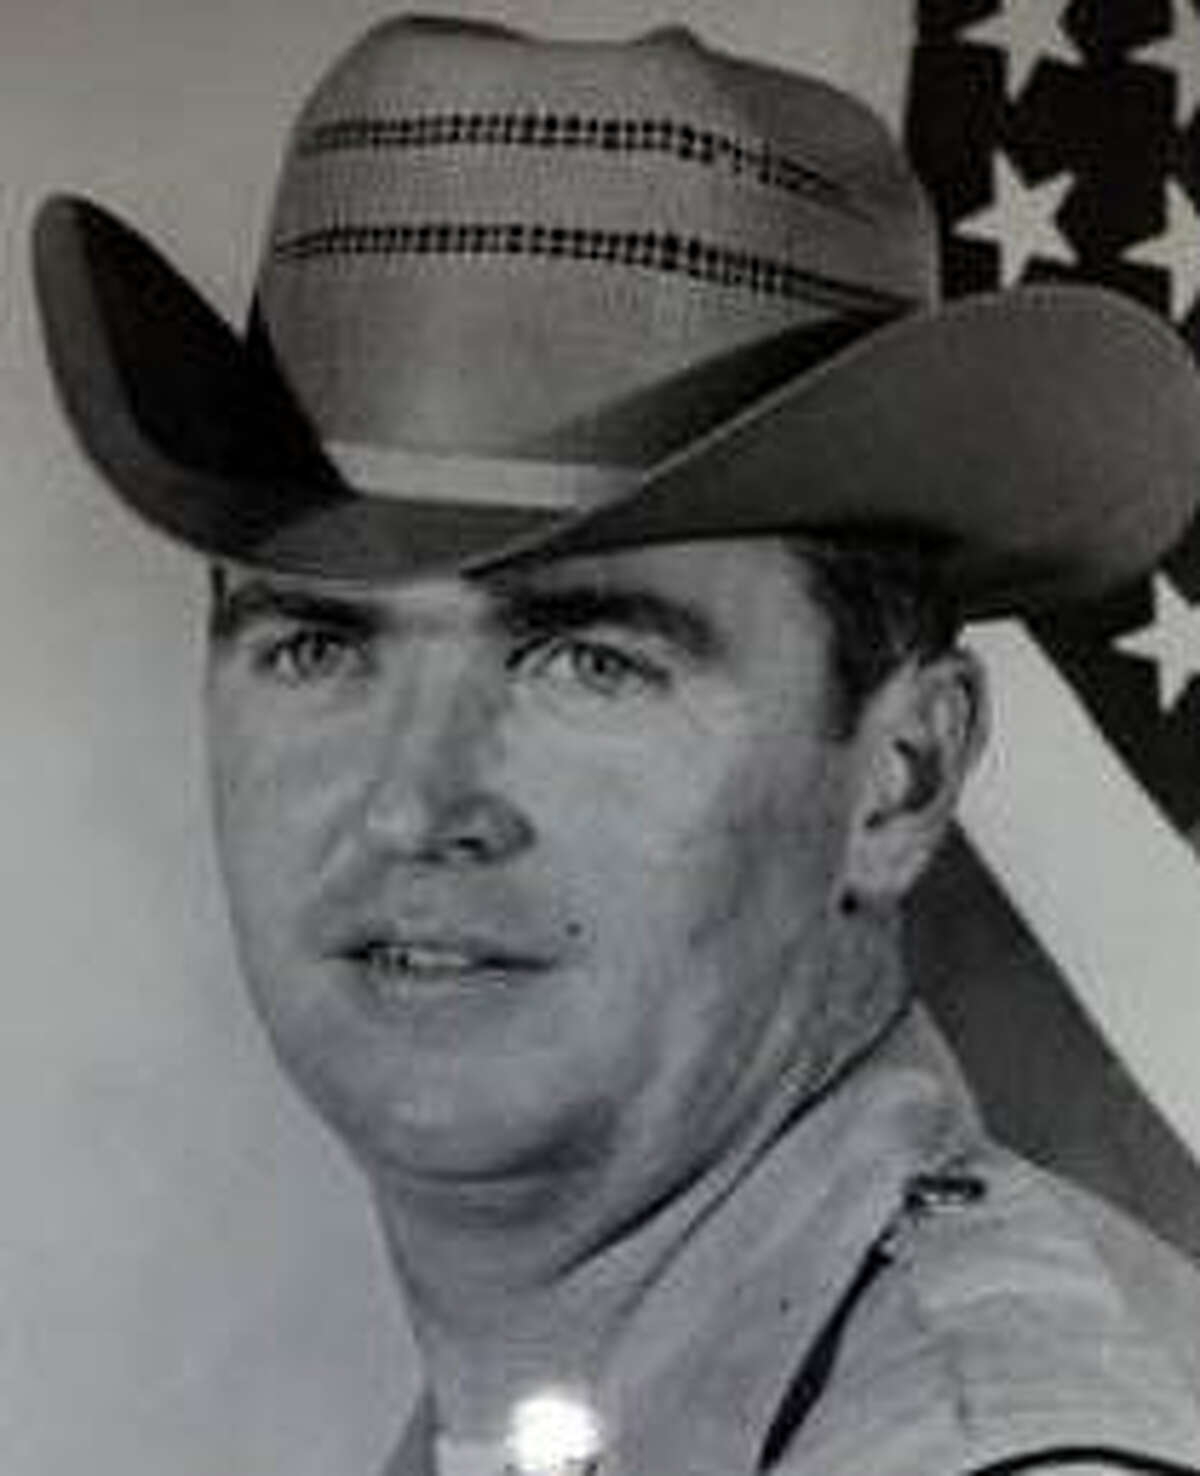 The Texas Department of Public Safety is offering a $20,000 reward for information leading to whoever shot and killed Alice Police Officer Matthew Murphy during a traffic stop in 1974. Murphy, 33, was the first officer killed in the line of duty in Alice, Texas. >>>Click through the gallery to see other unsolved homicides in the Houston area and in Texas